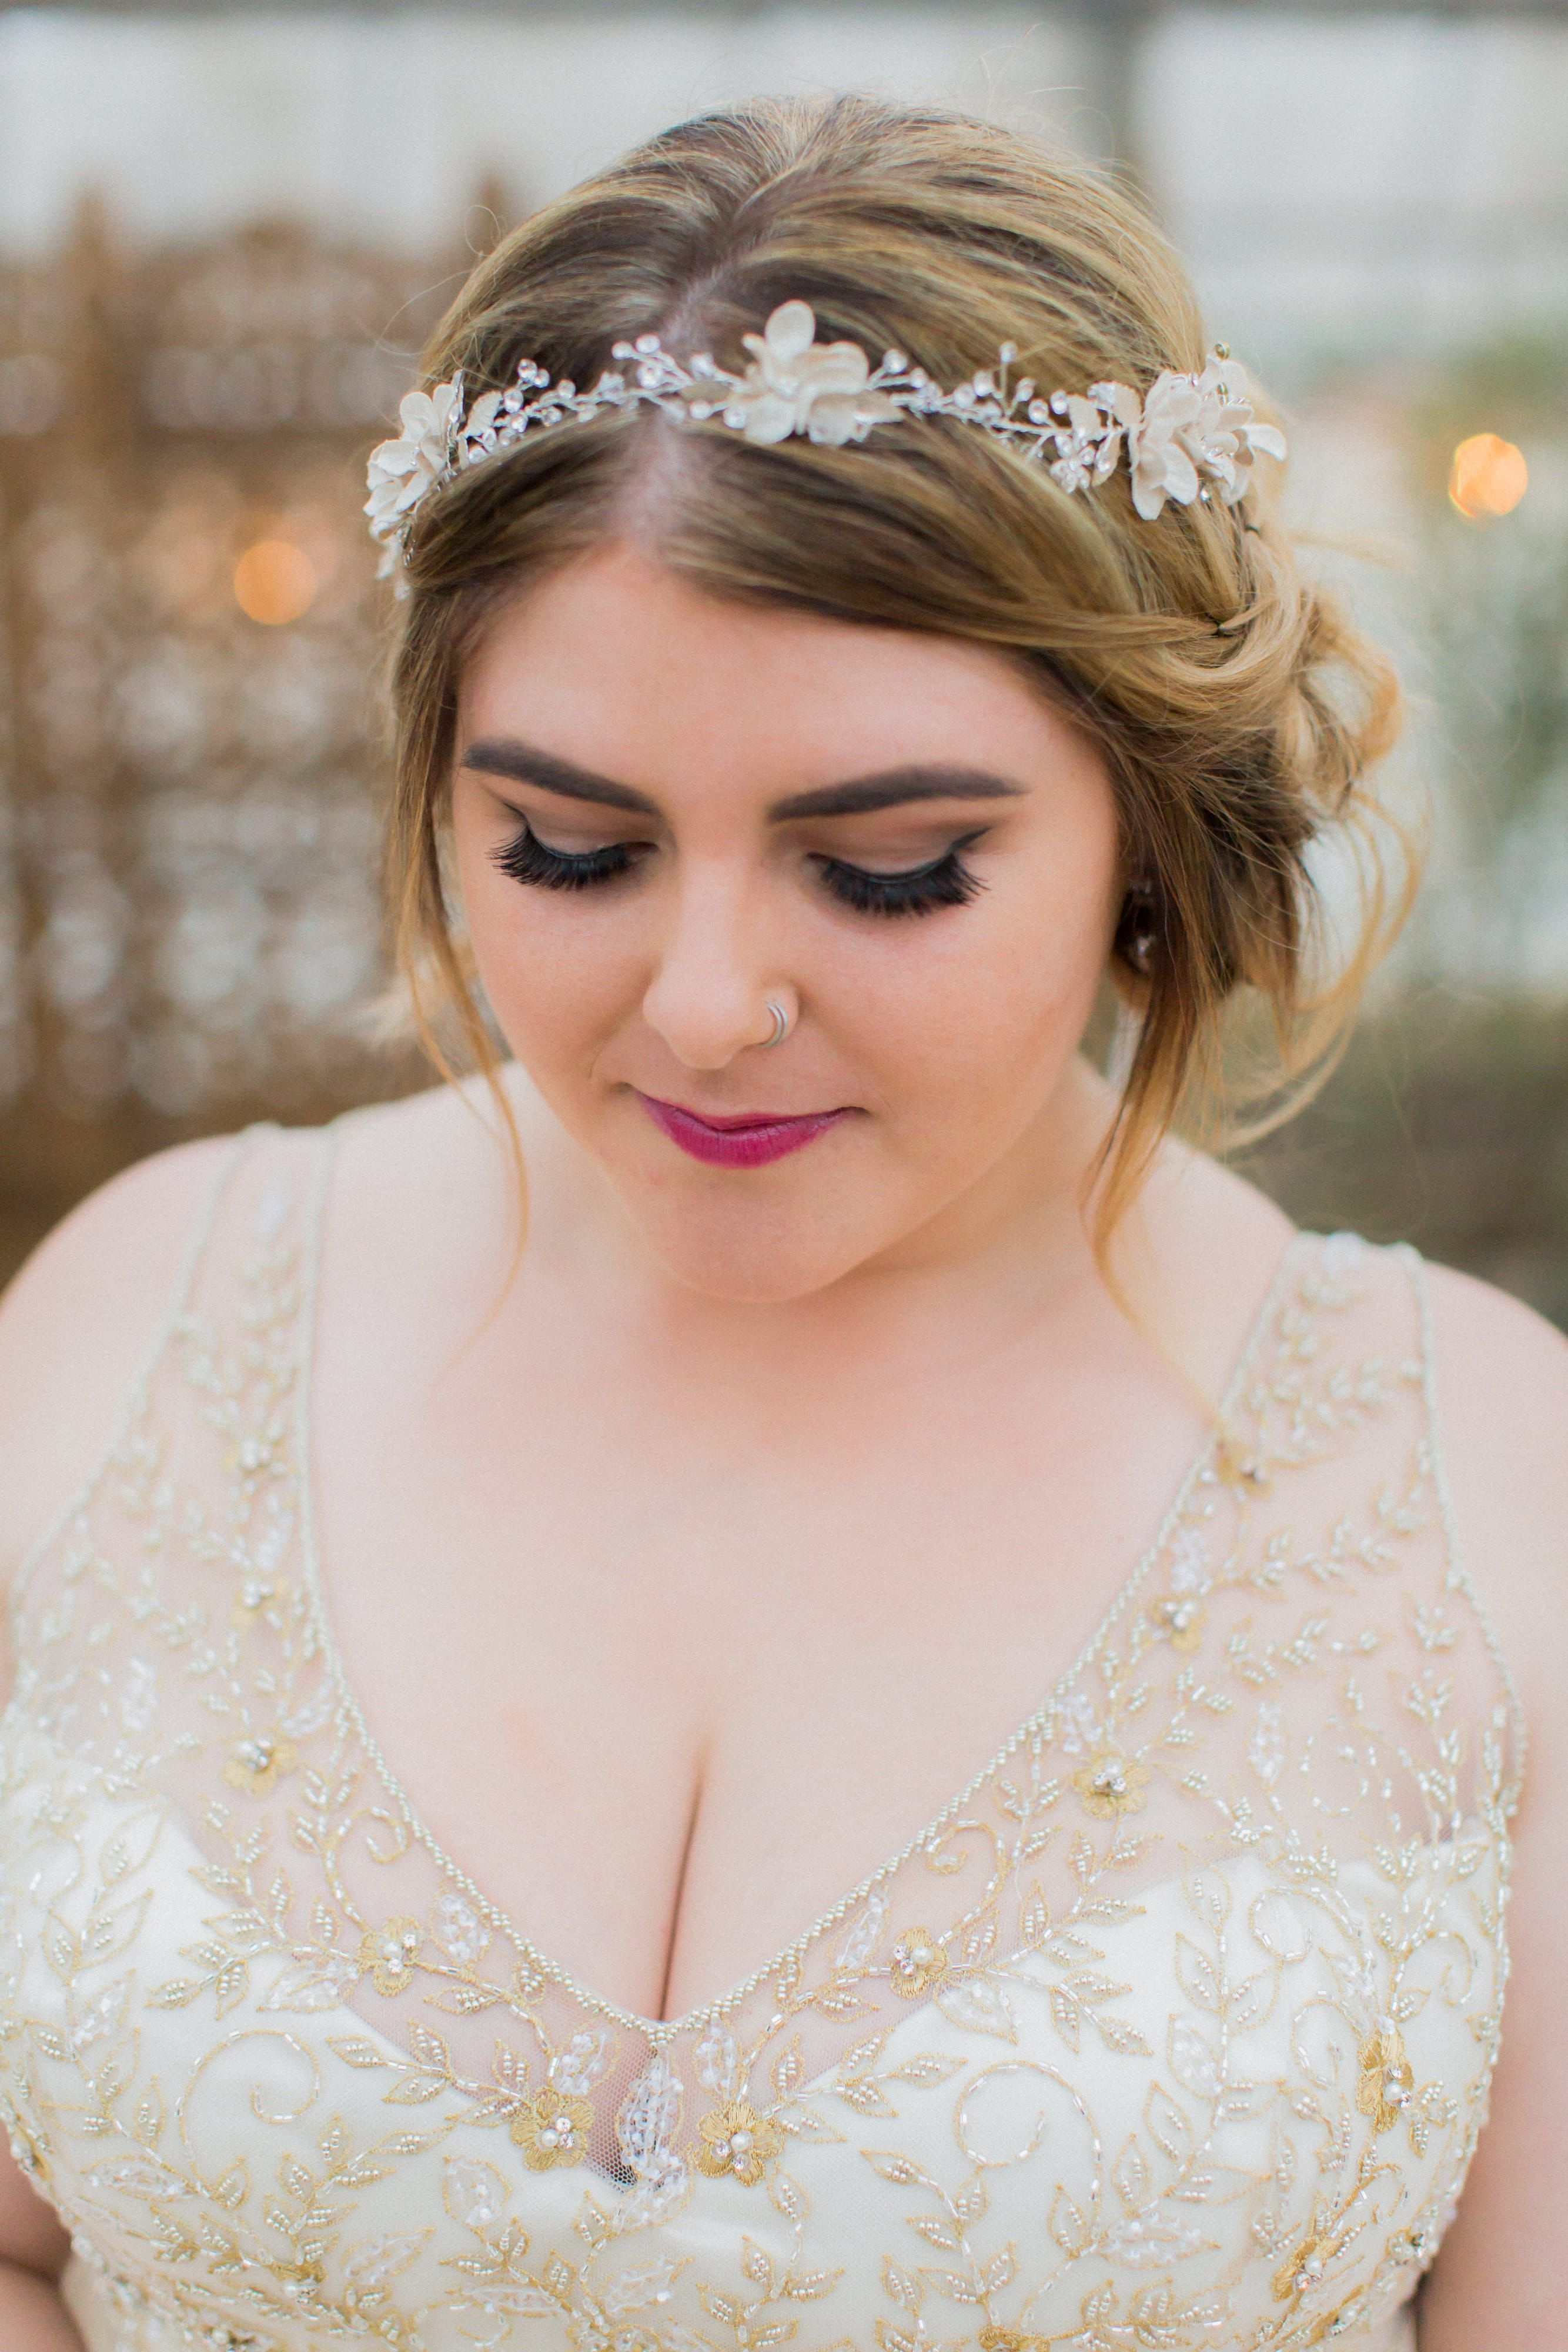 194 plus size short hairstyles for round faces | wedding